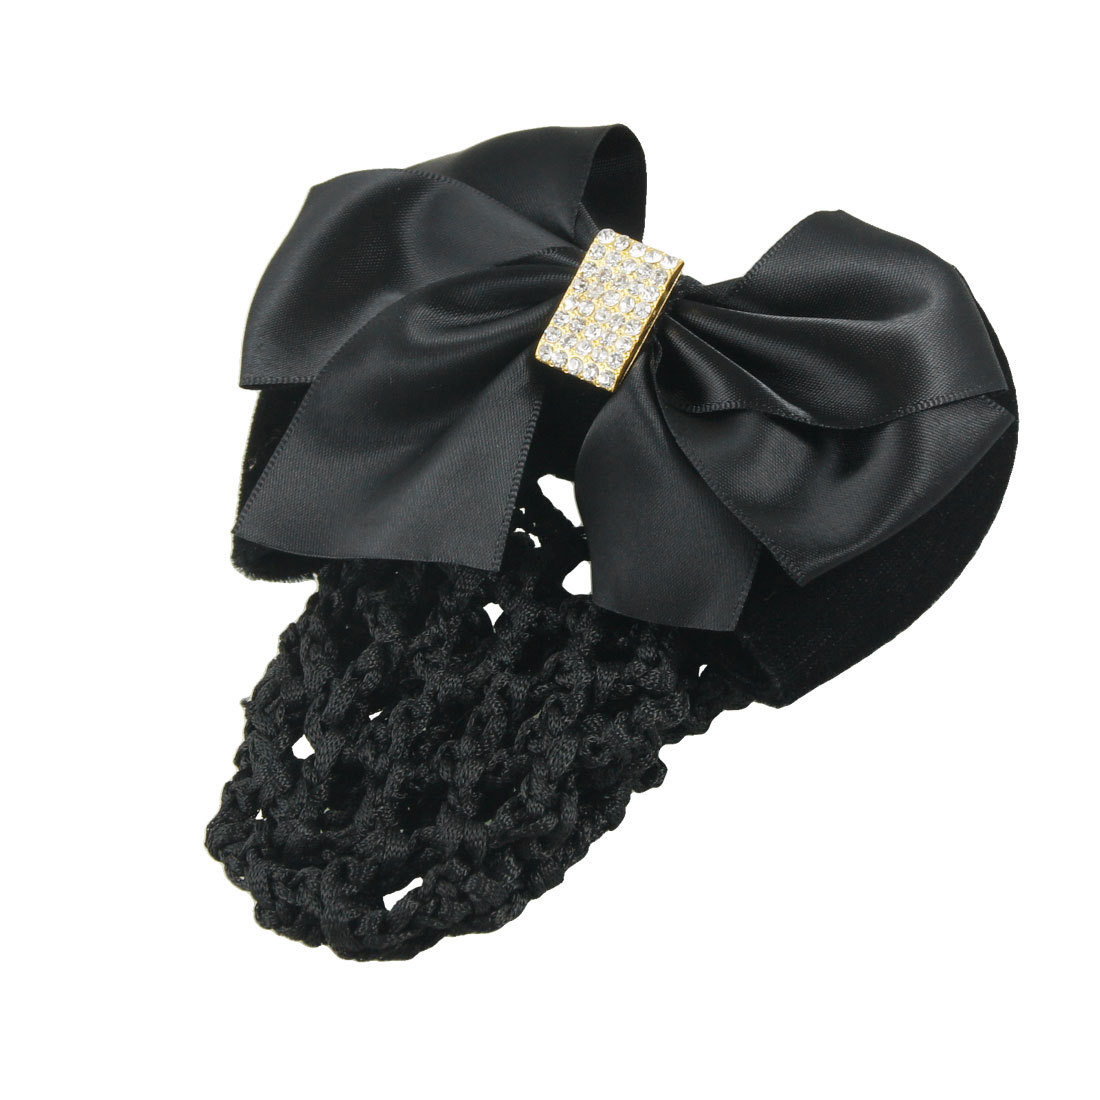 Rhinestone Inlaid Nylon Polyester Bowknot Detail Snood Hair Clip Black